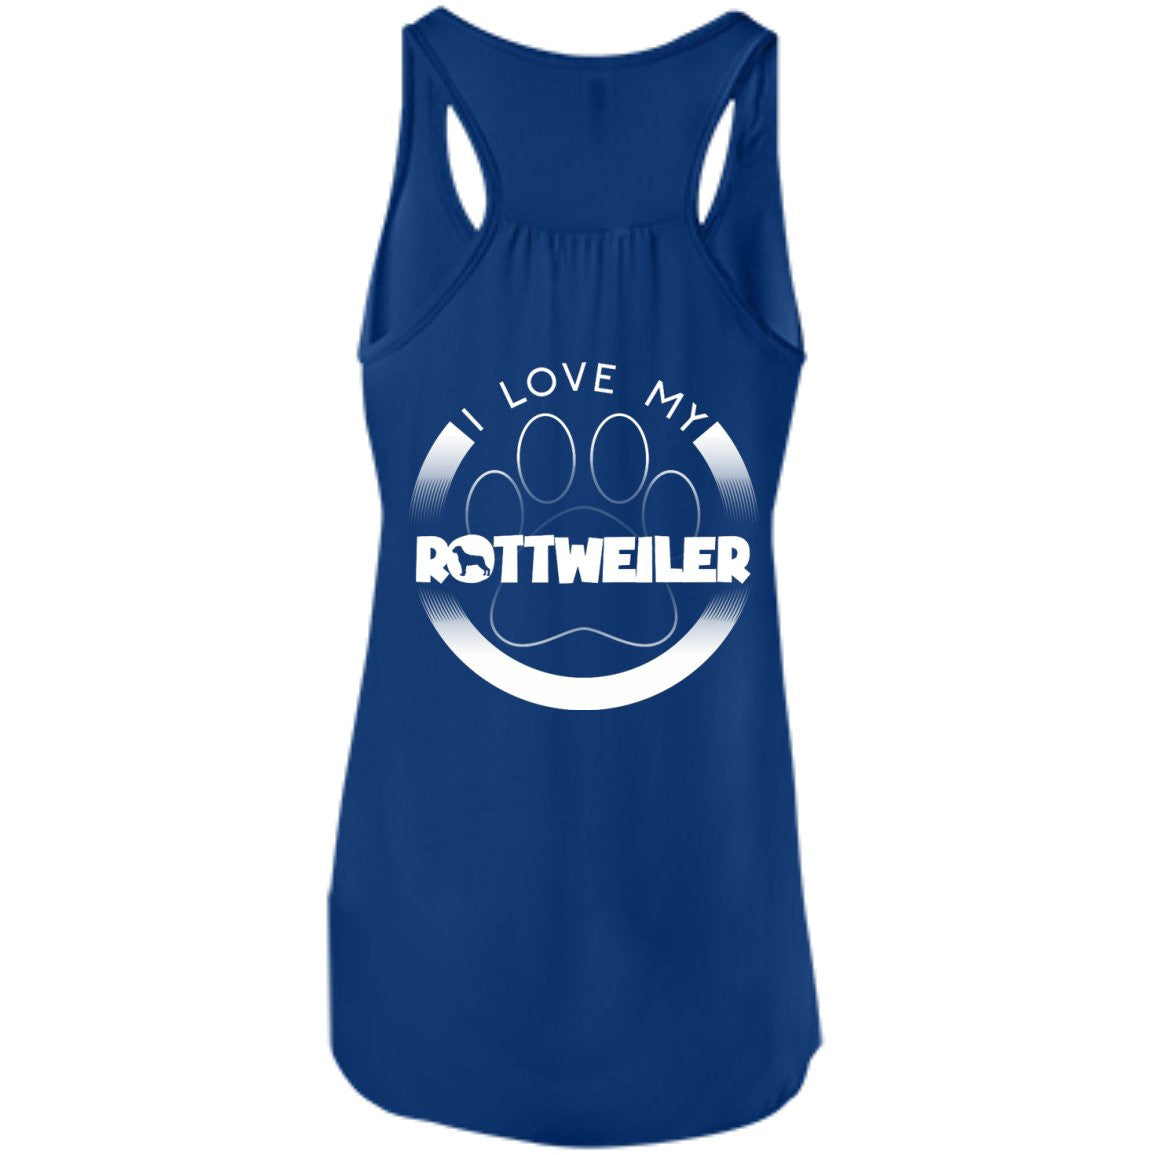 I LOVE MY ROTTWEILER (Paw Design) - Back Design - Bella+Canvas Flowy Racerback Tank